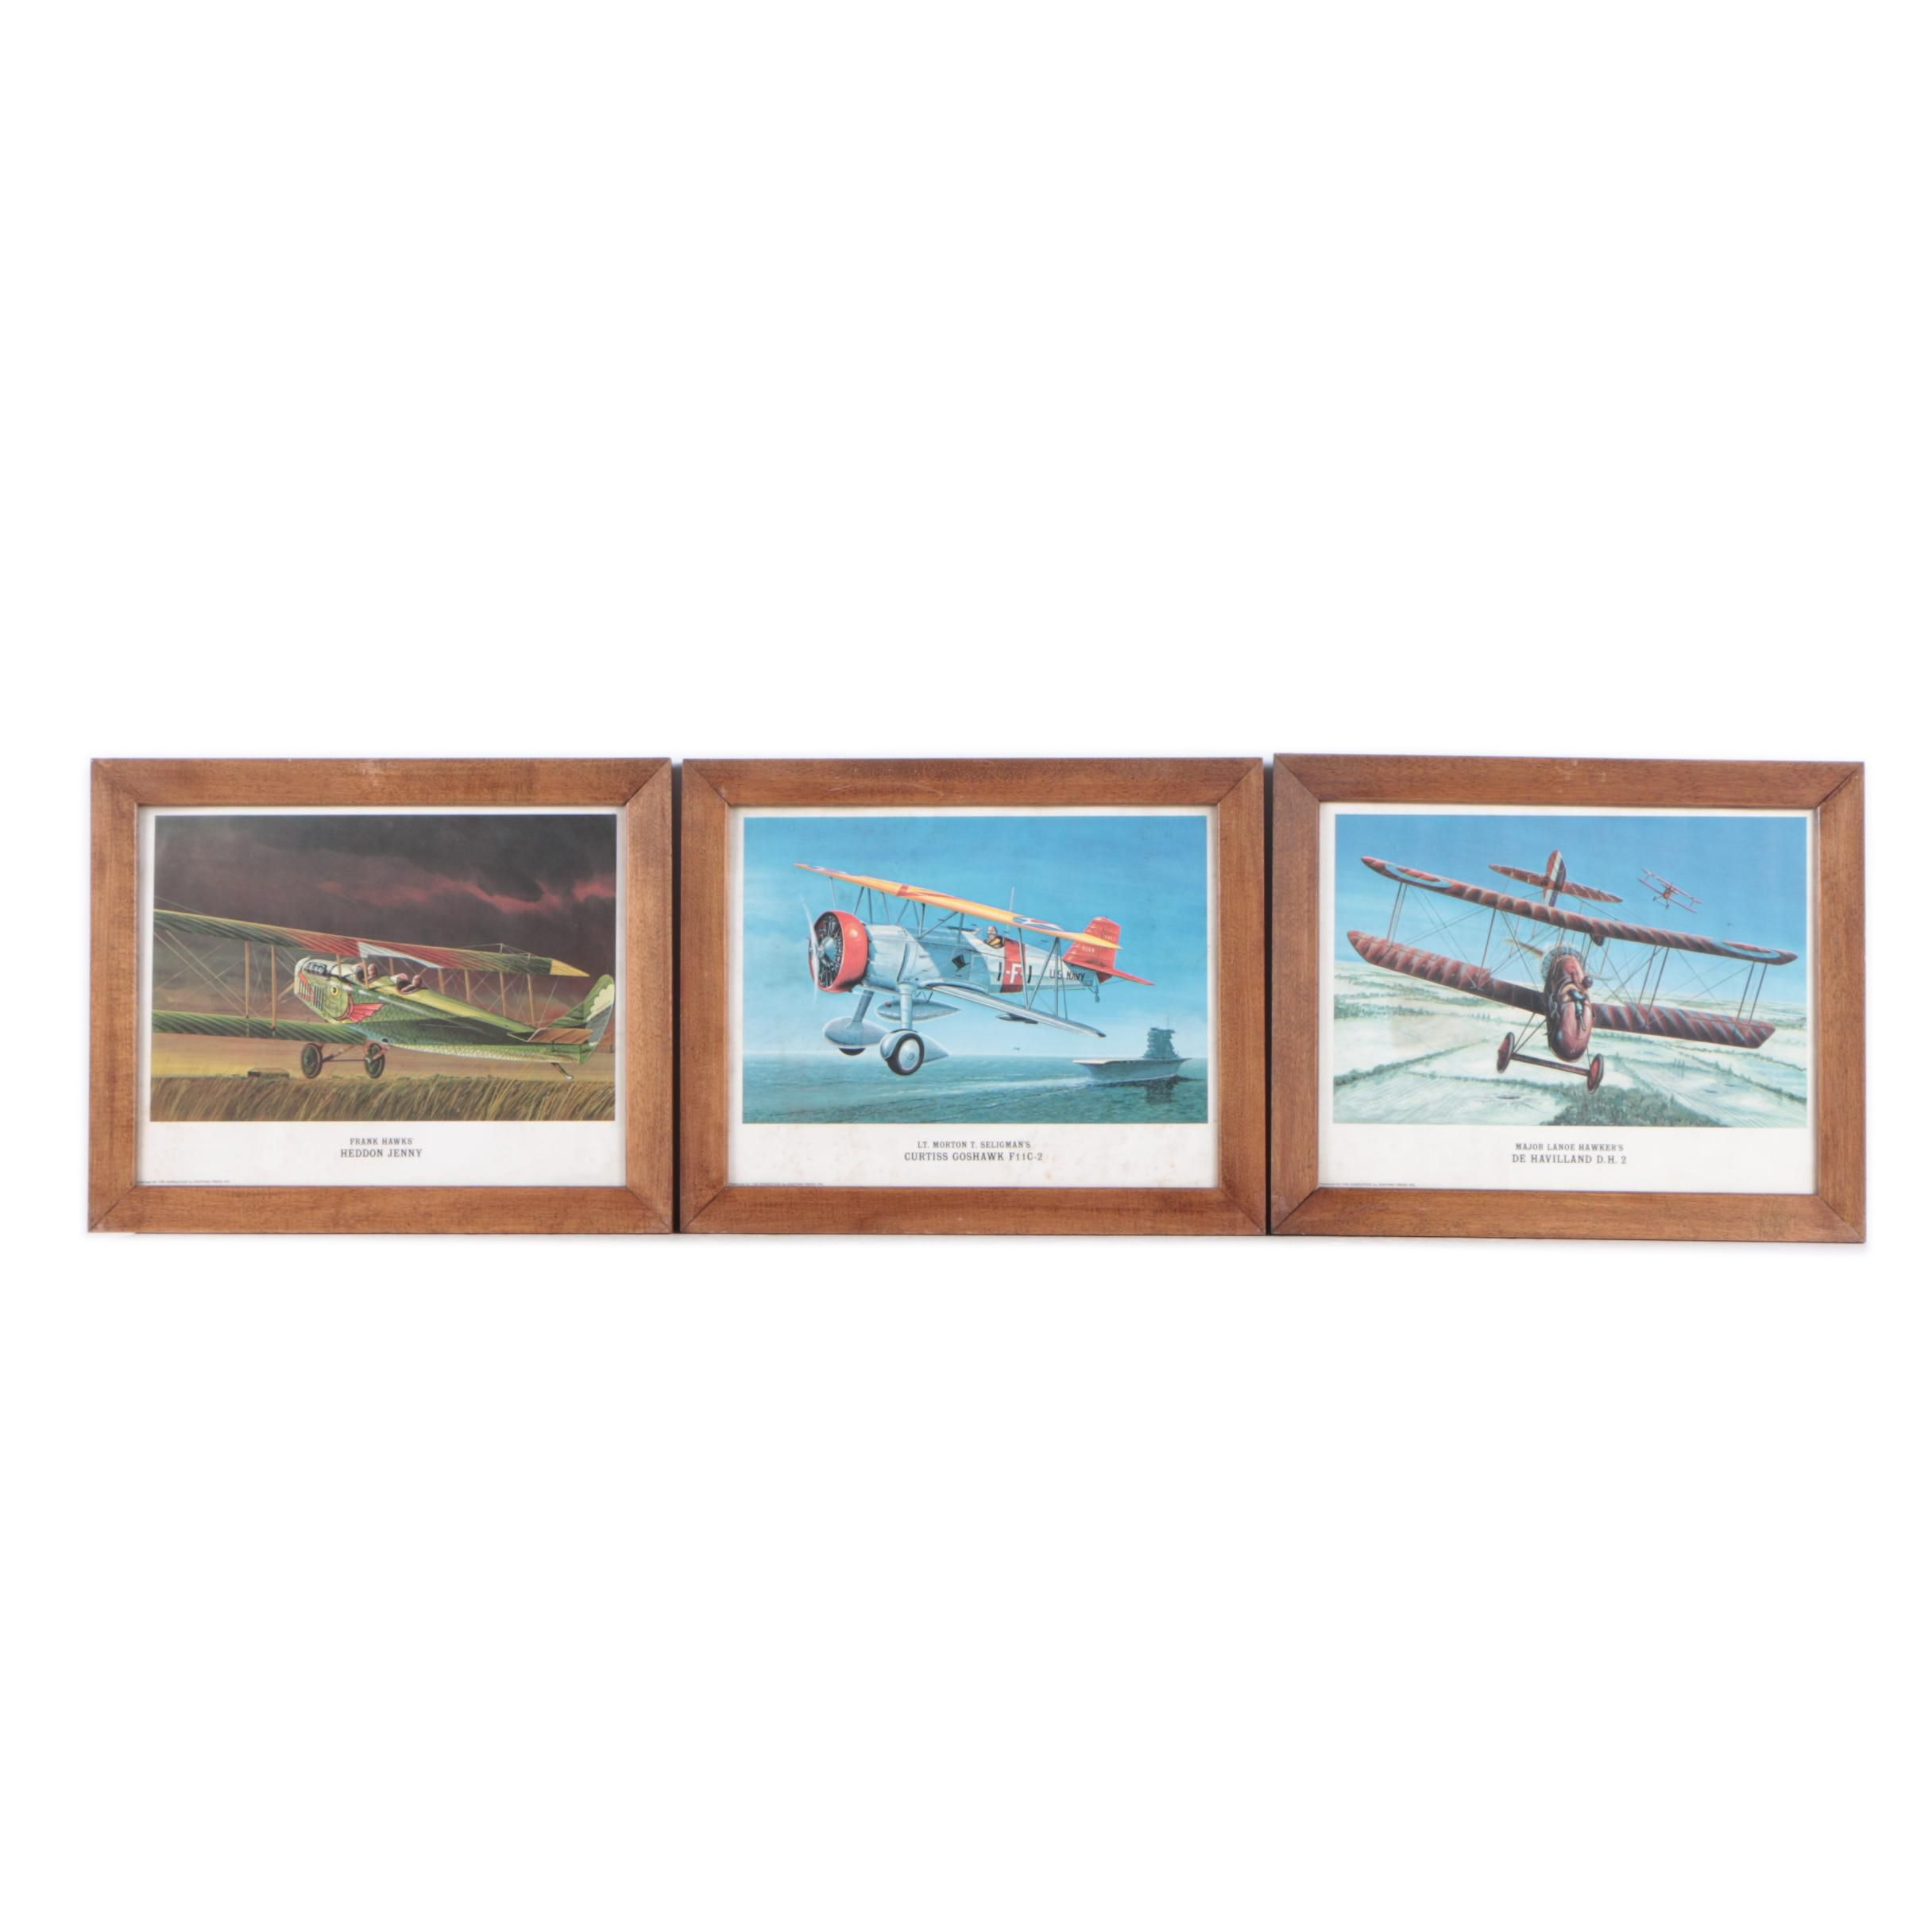 Collection of Offset Lithographs on Paper of Airplanes